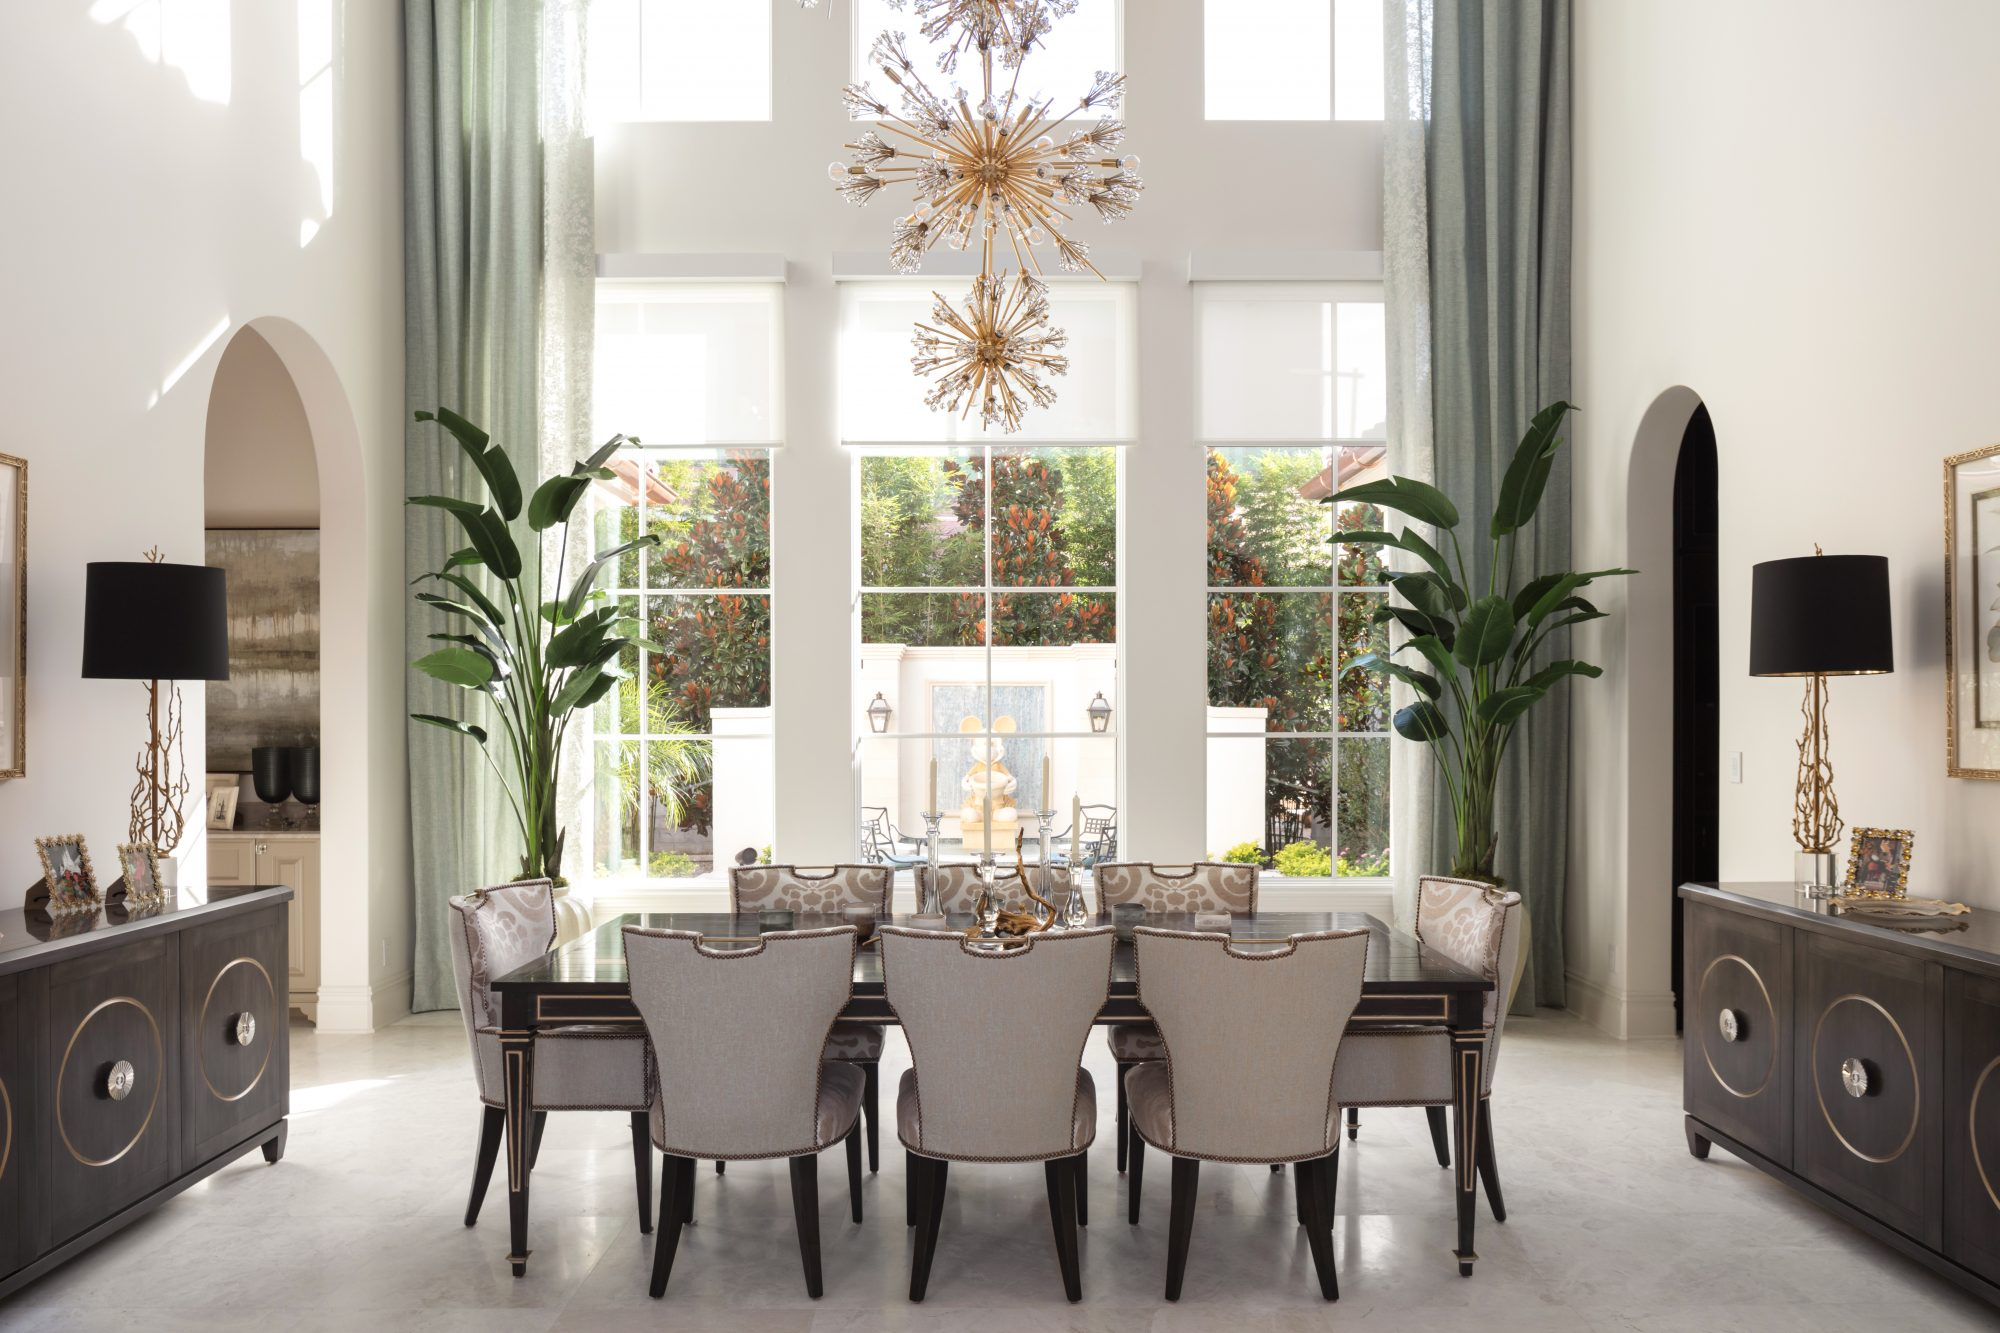 A Light-Filled Dining Room